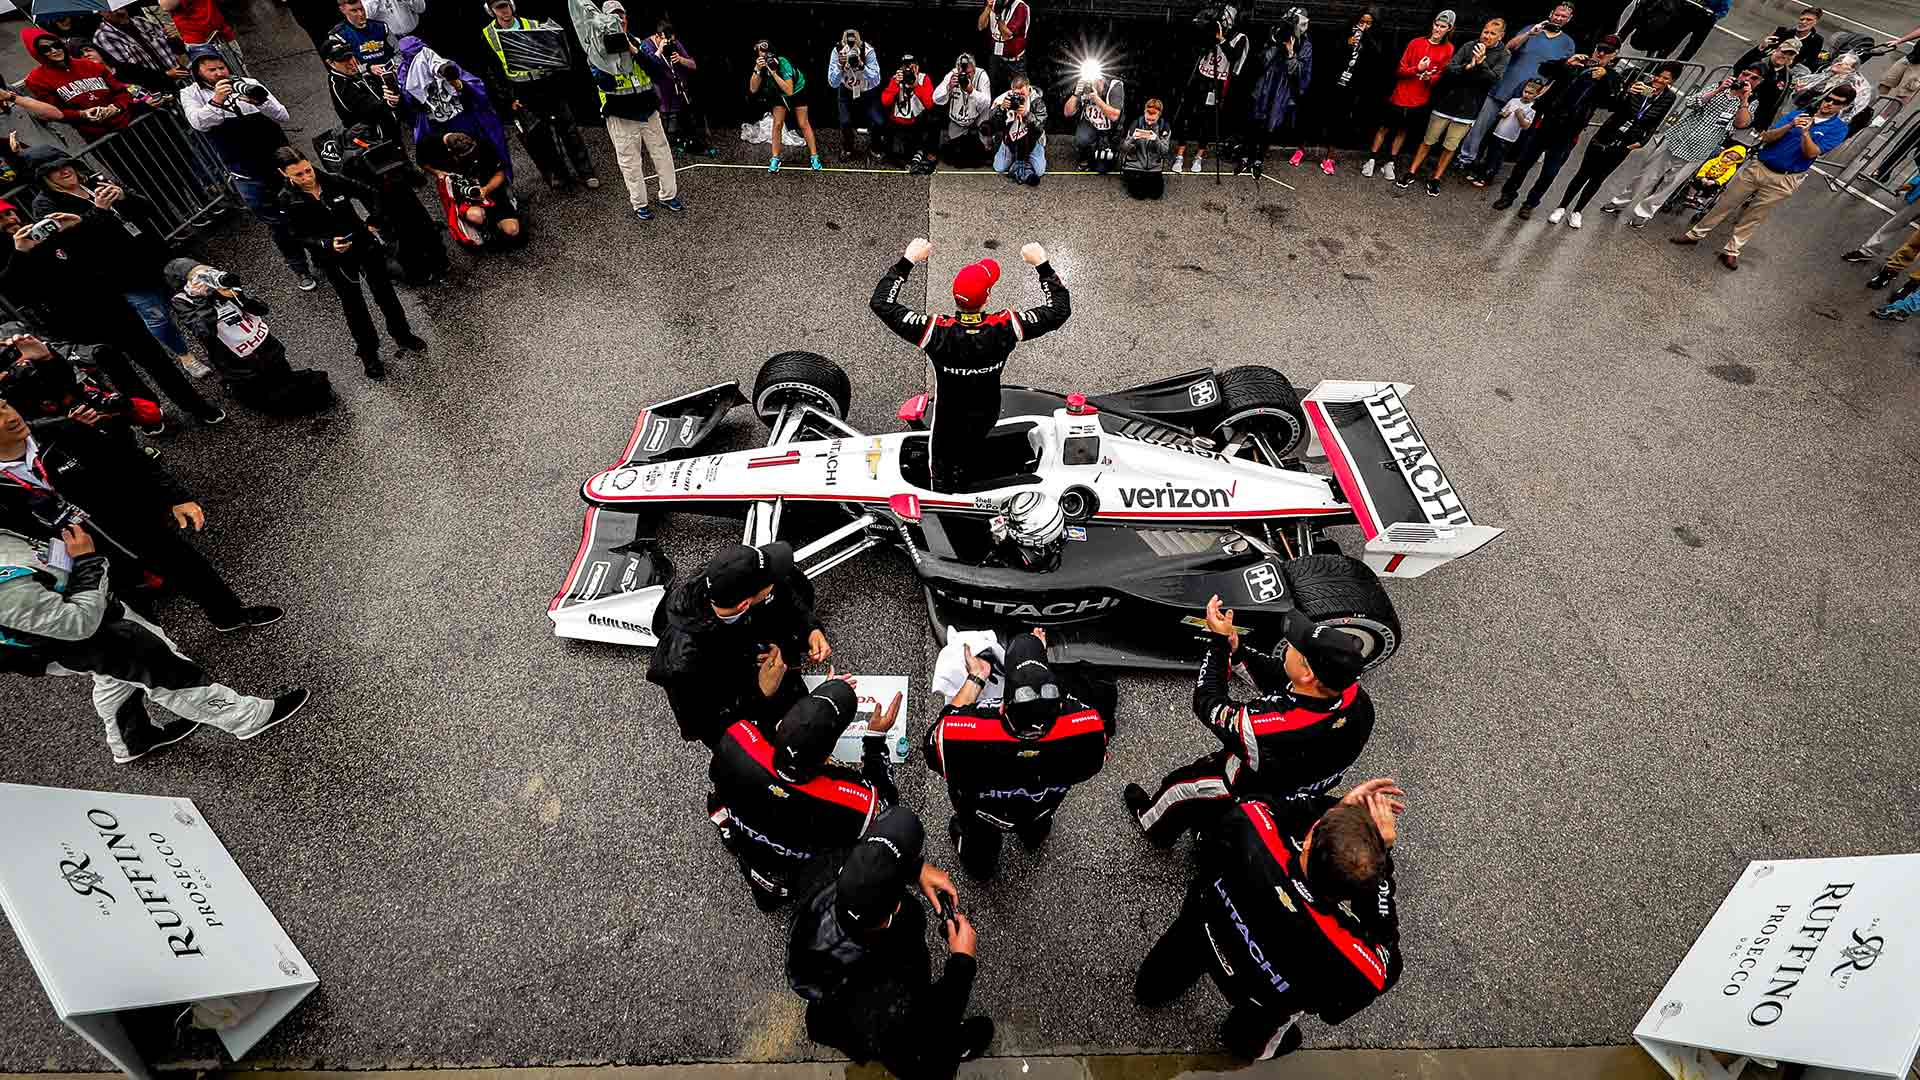 Josef Newgarden in victory circle at the Honda Indy Grand Prix of Alabama